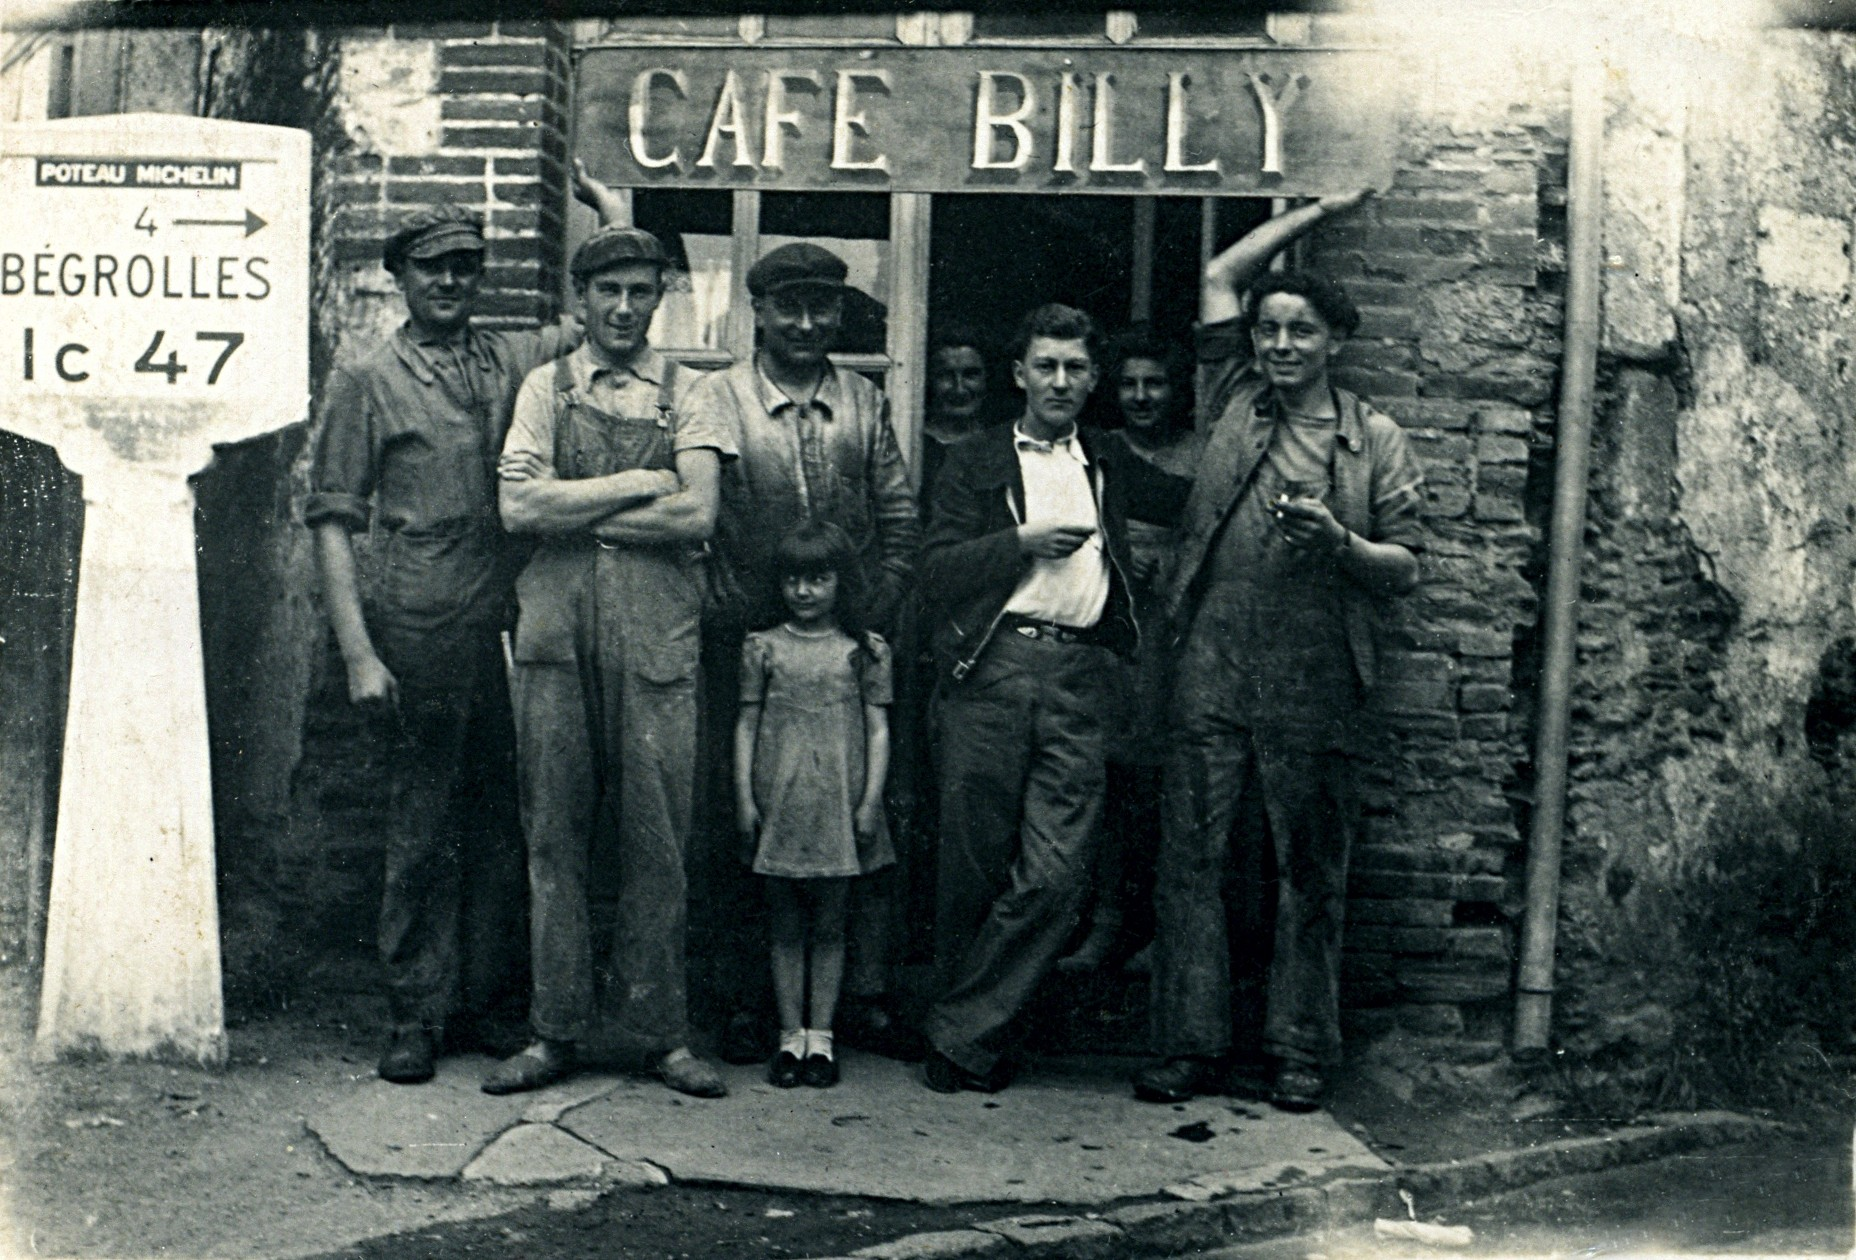 Cafe billy